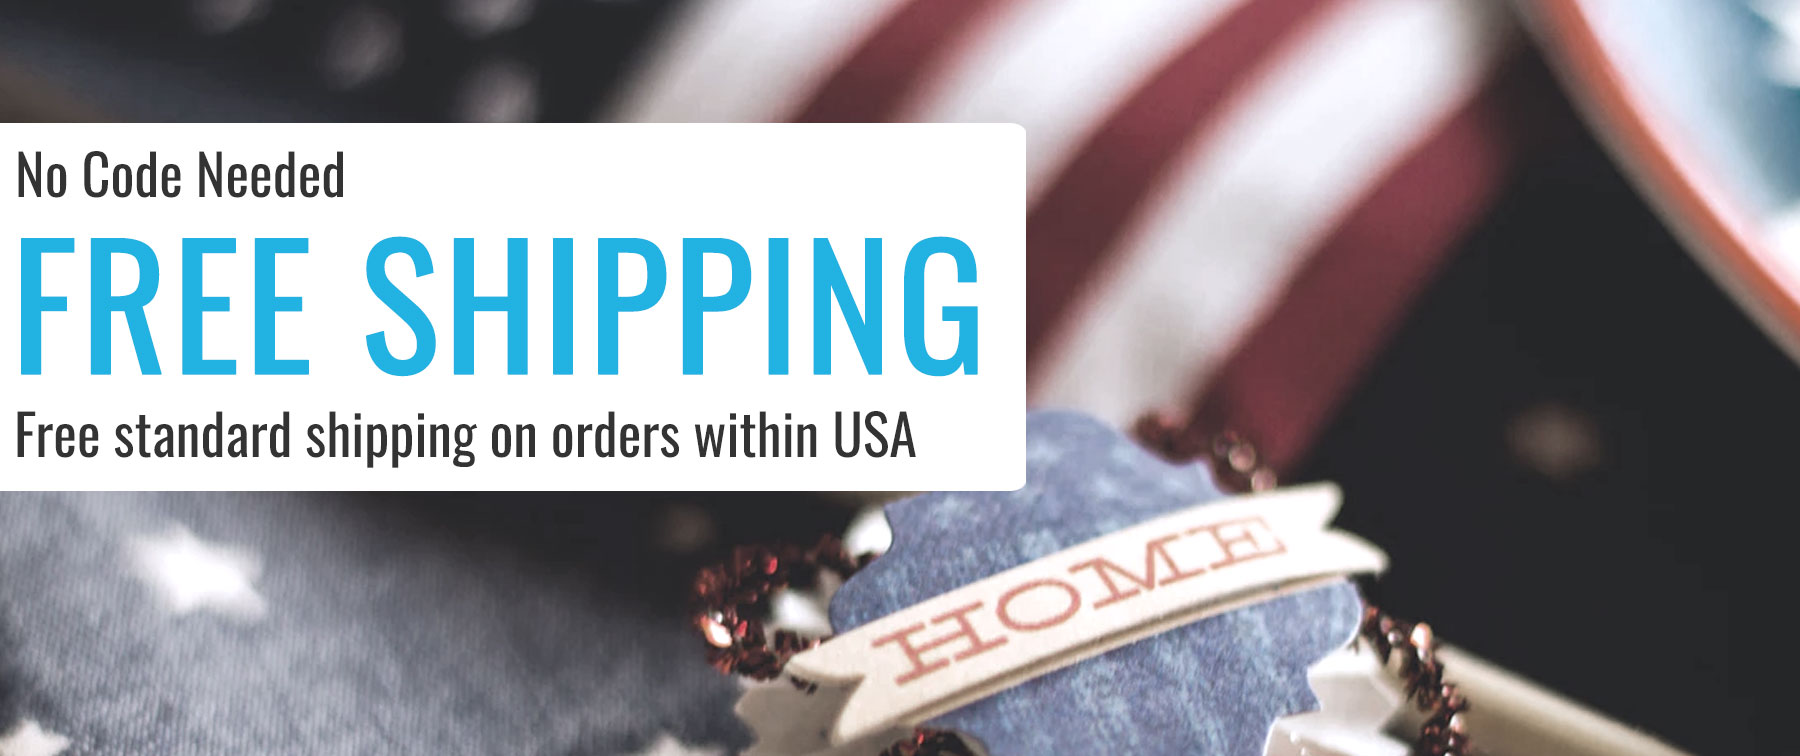 Deals Banner Free Shipping 6 4 18